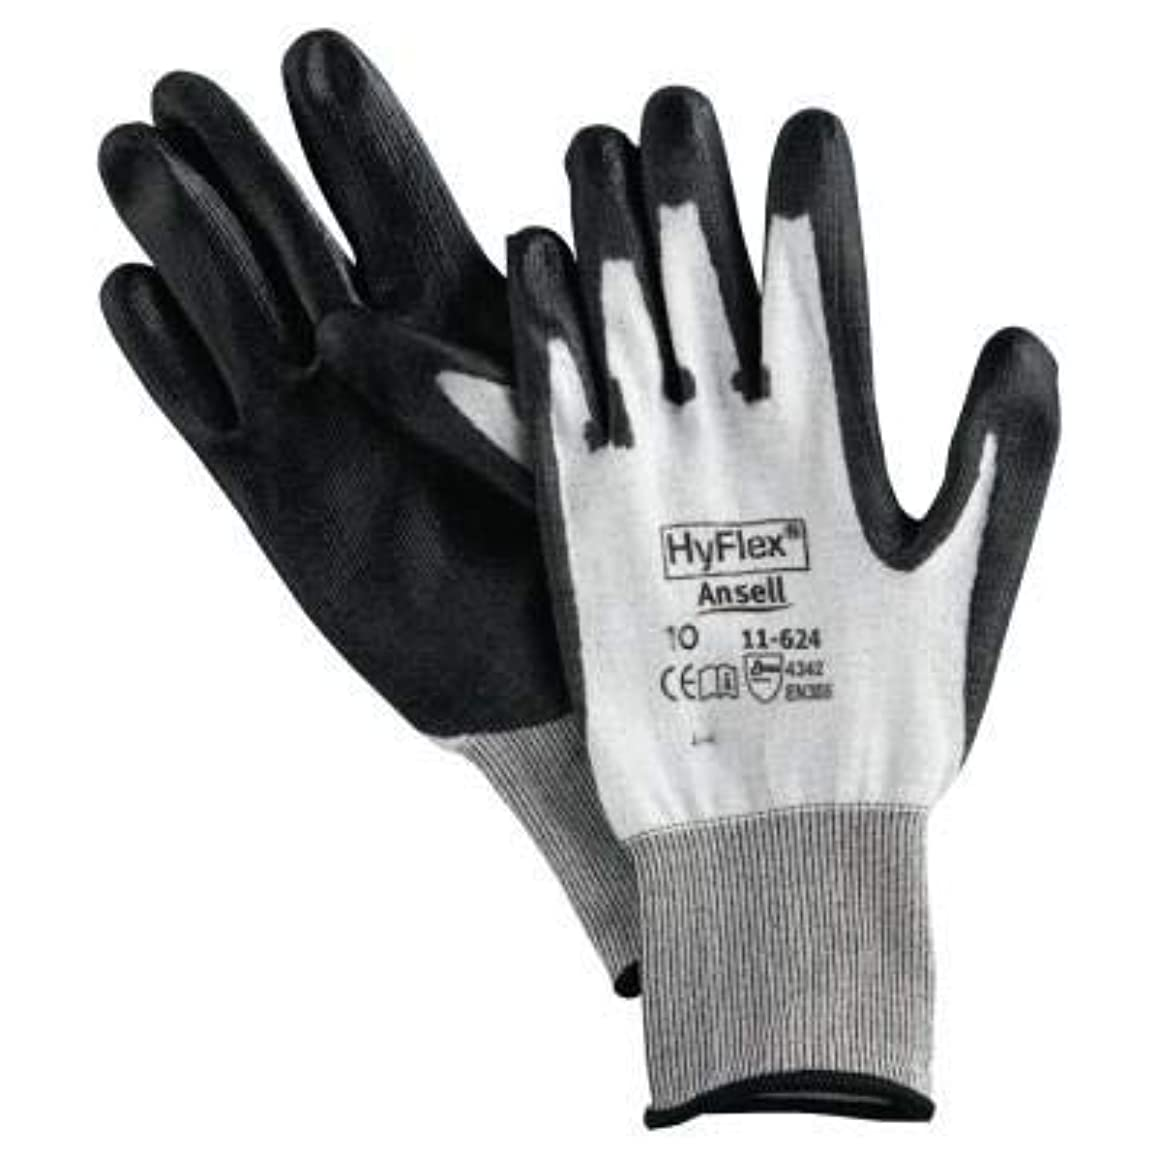 Ansell Size 11 HyFlex? Light Duty Cut Resistant Black Polyurethane Palm Coated Work Gloves With White Lycra? And DSM Dyneema? Liner And Knit Wrist